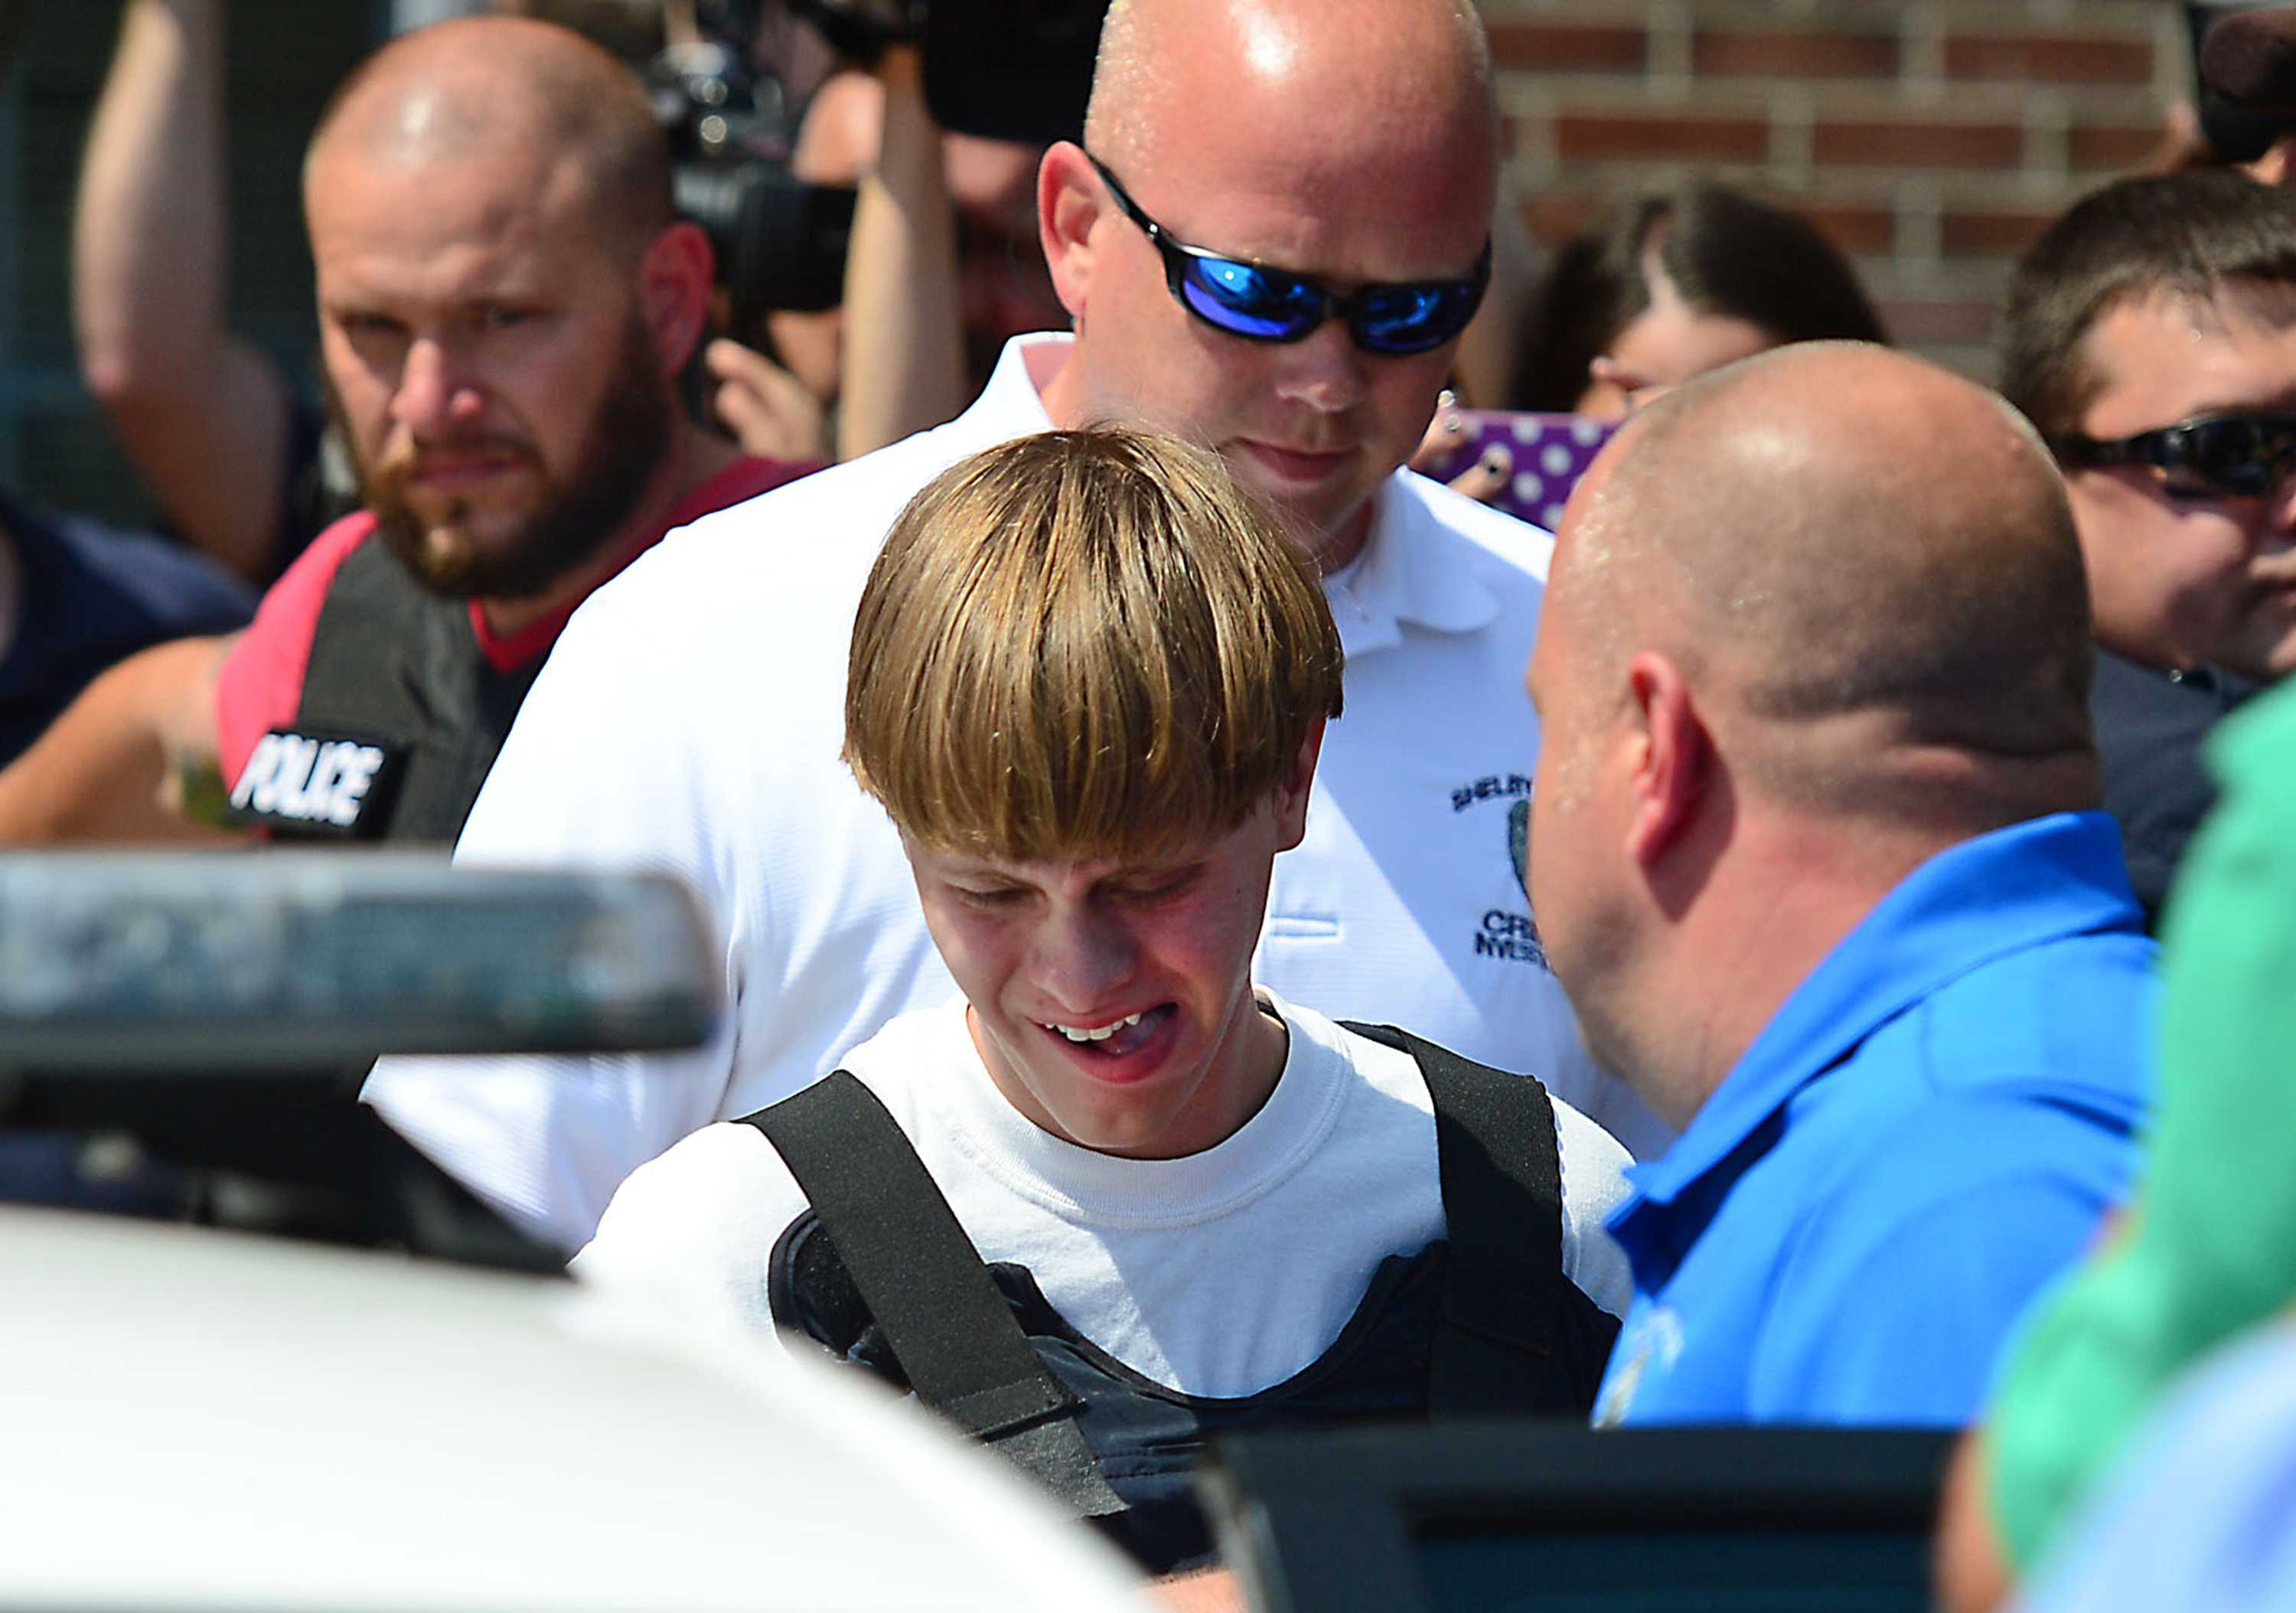 Charleston shooting suspect Dylann Roof is escorted from the Shelby Police Dept. Thursday, June 18, 2015 in Shelby, N.C.  (Todd Sumlin/Charlotte Observer/TNS)